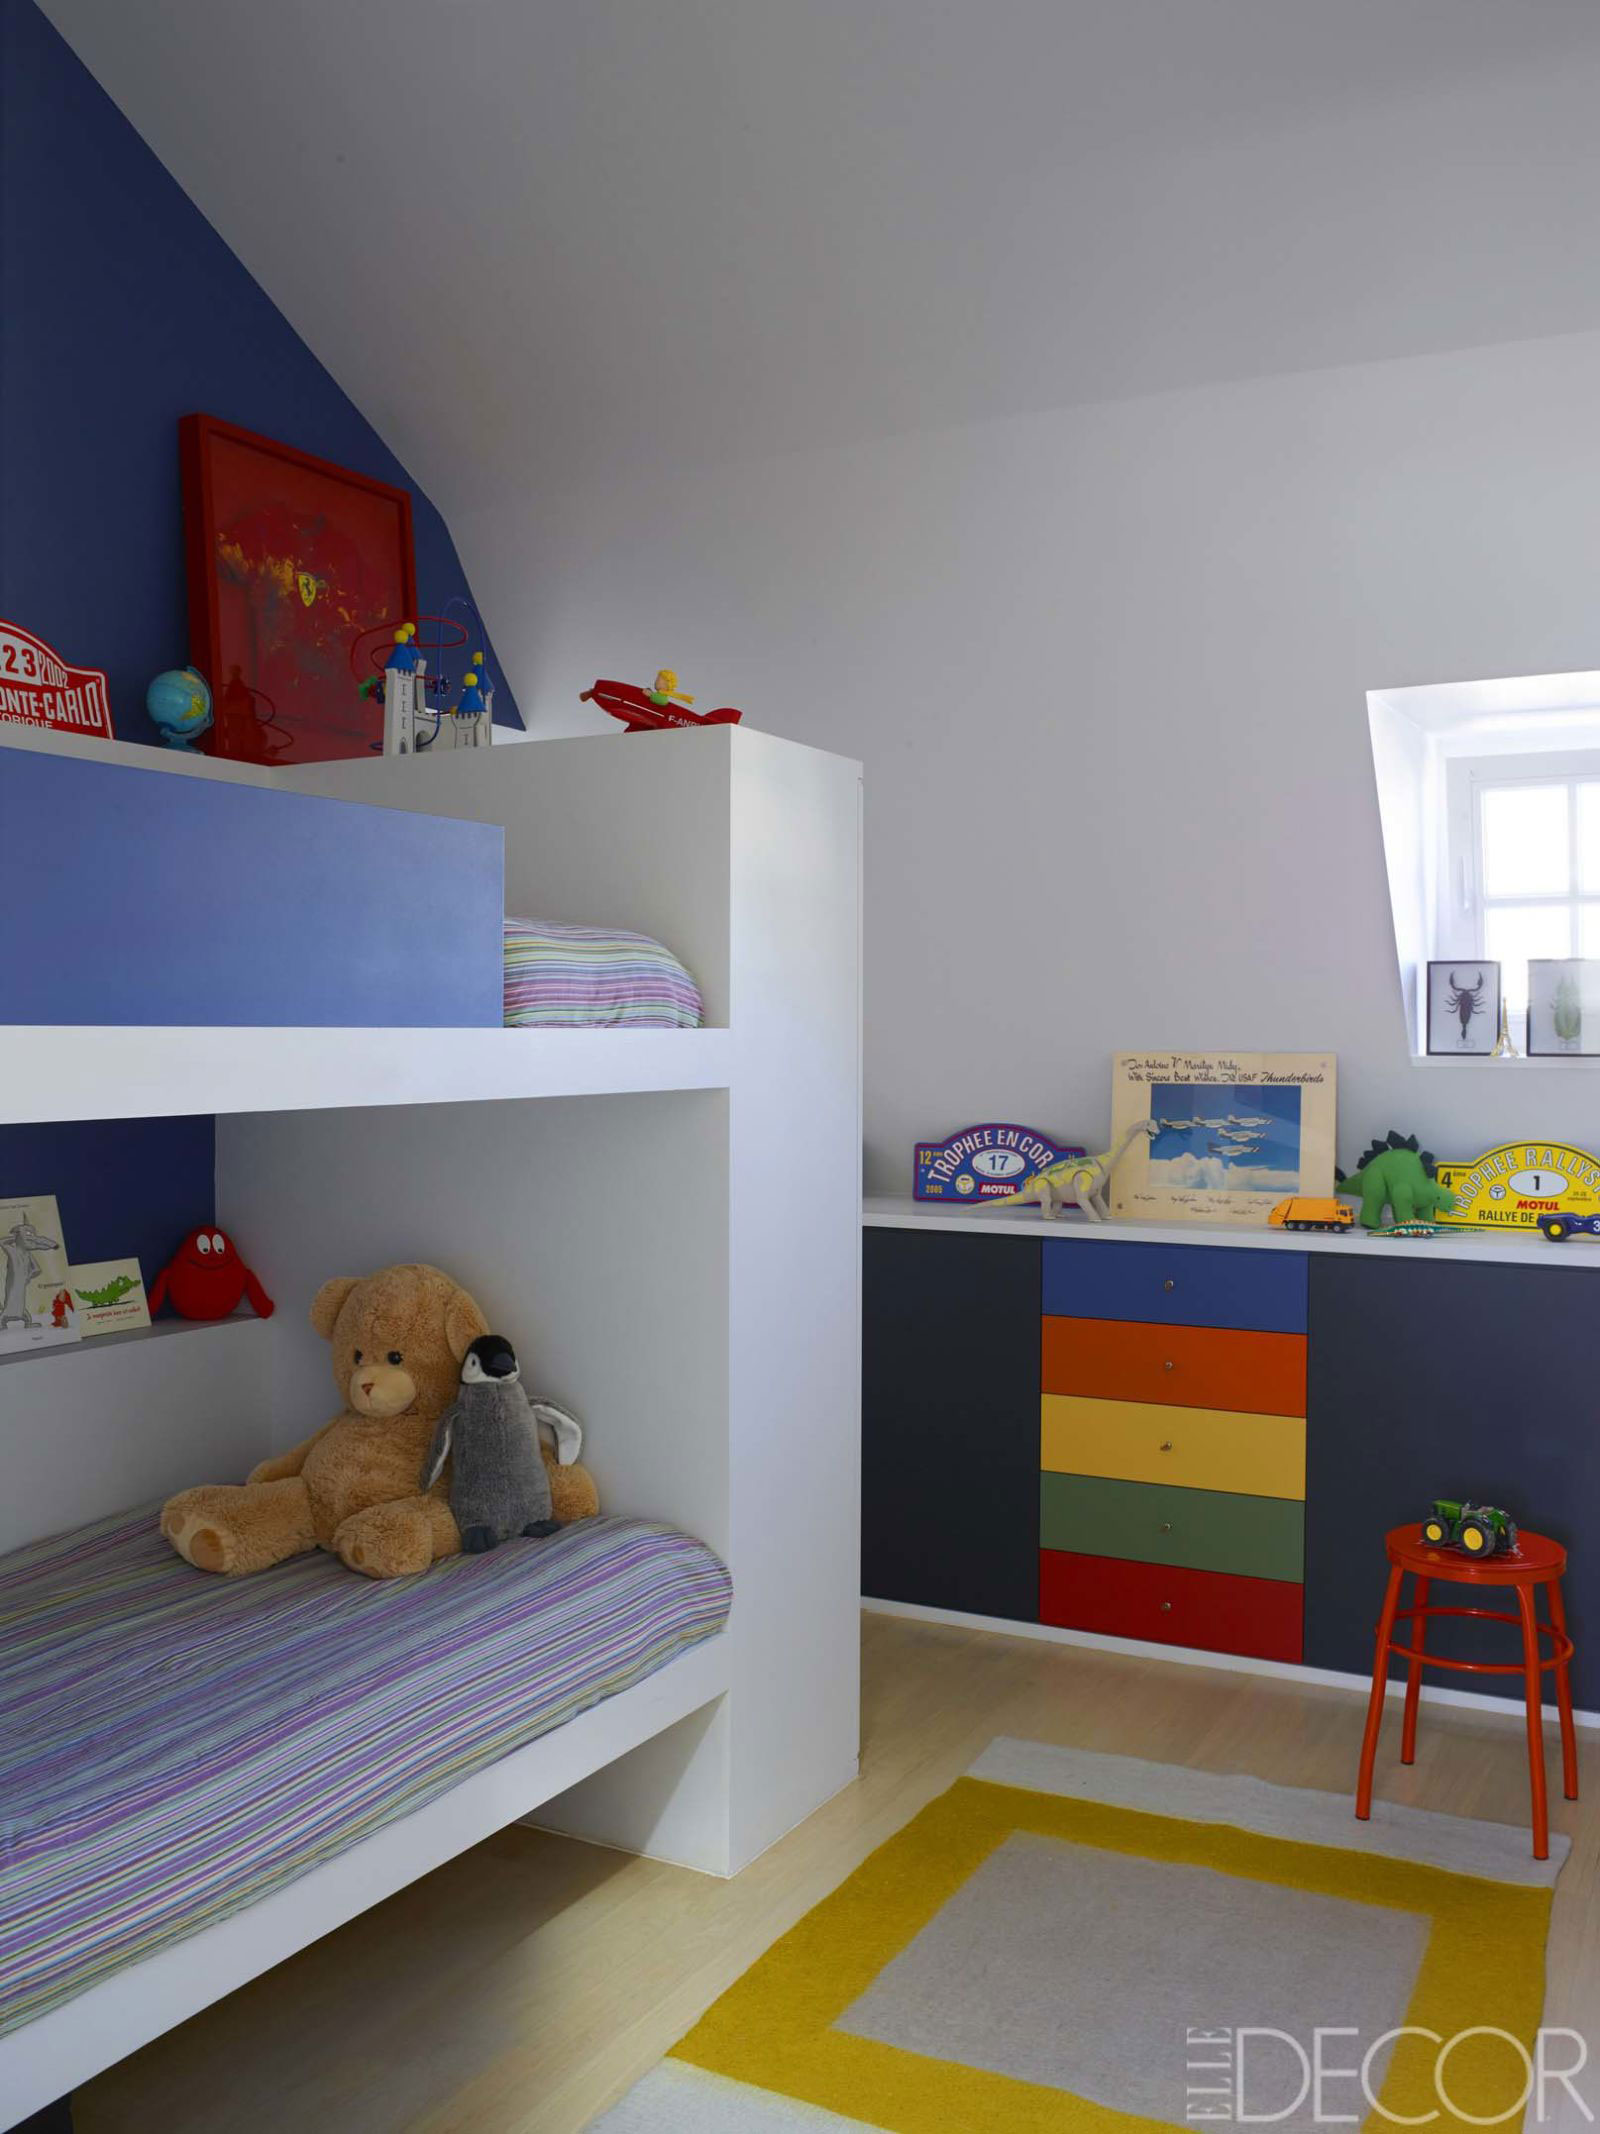 15 Cool Boys Bedroom Ideas - Decorating a Little Boy Room on Small Bedroom Ideas For Boys  id=95975